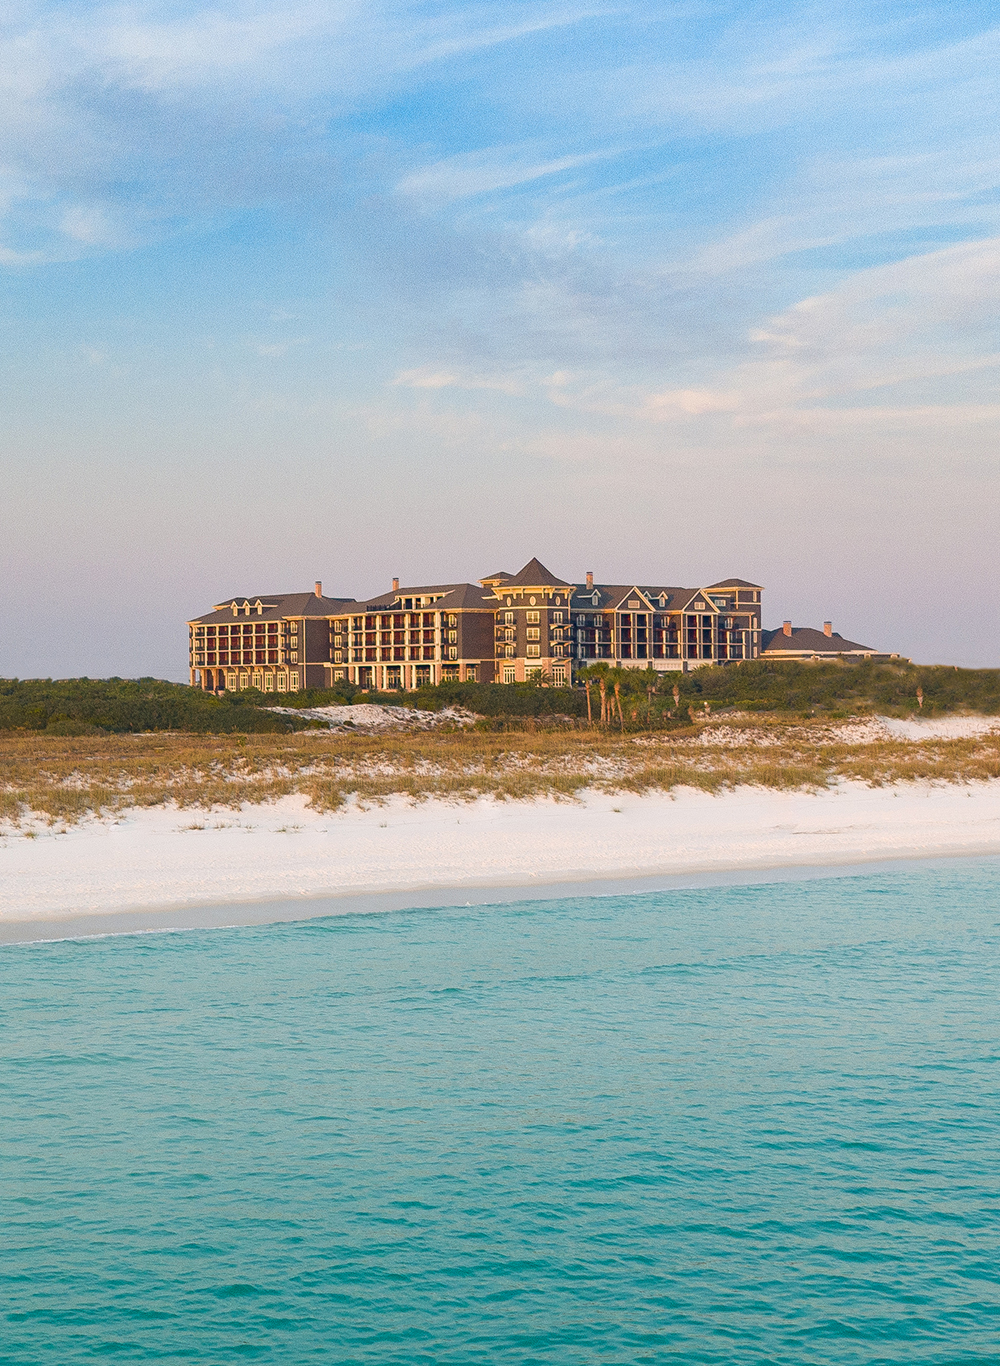 The Henderson Hotel in Florida --view from the beach